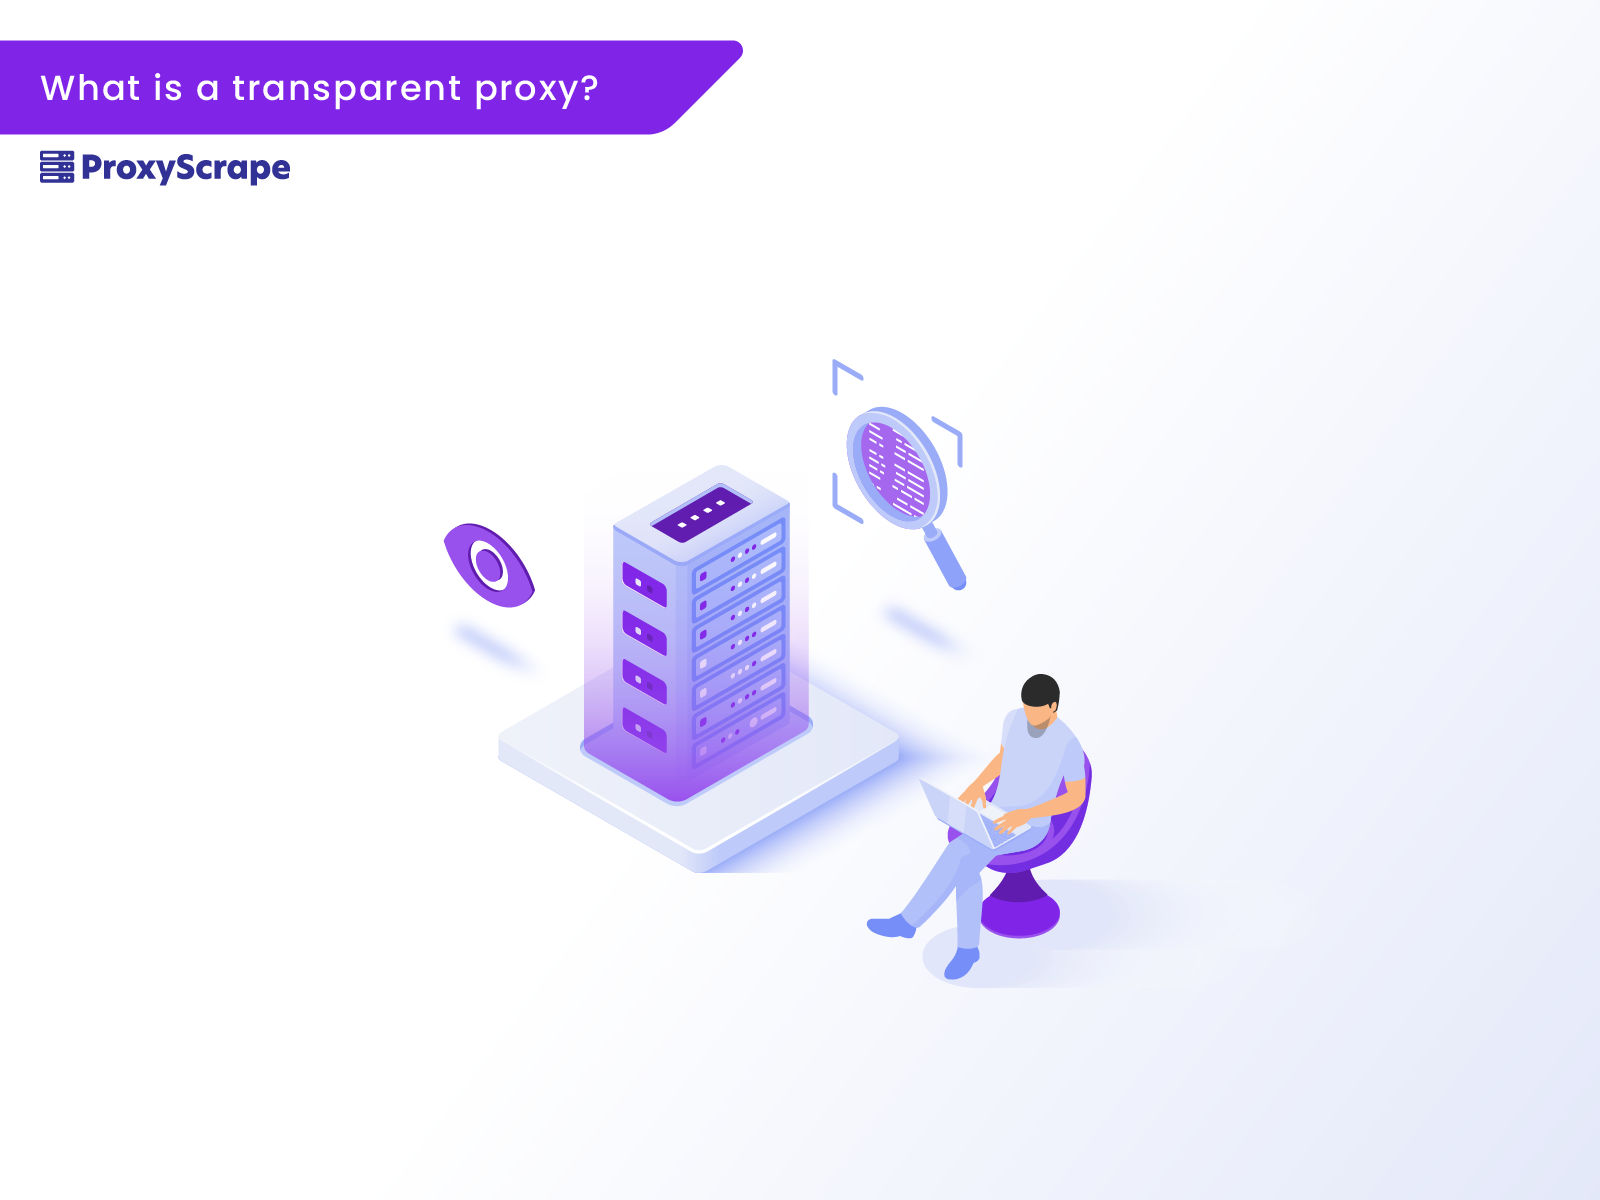 What is a transparent proxy?